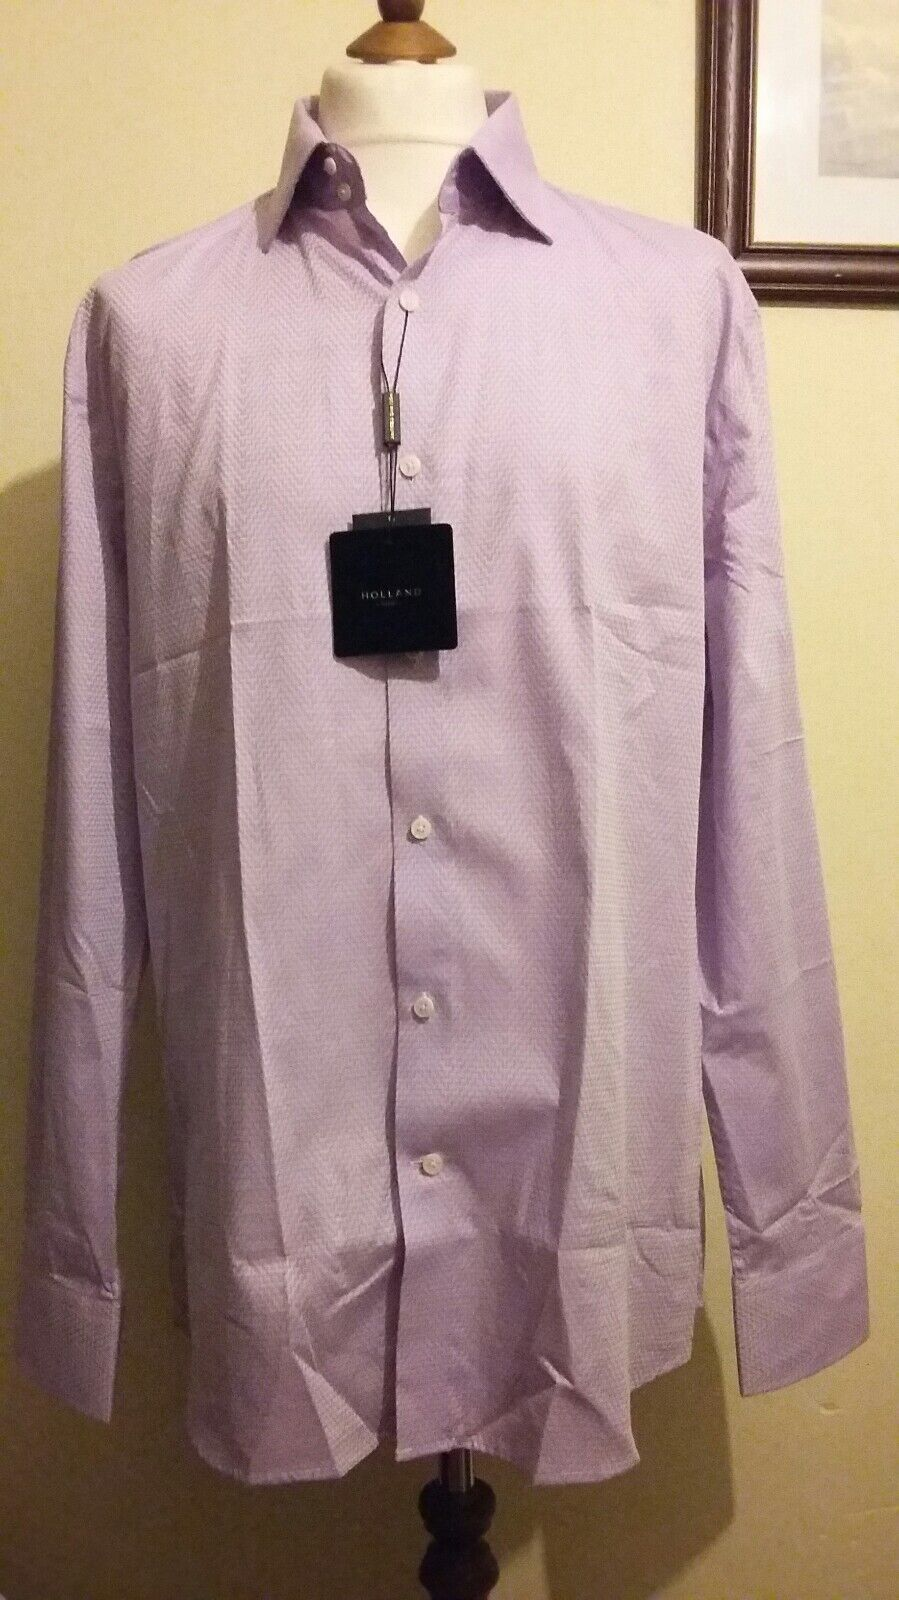 HOLLAND ESQUIRE Chevron Pattern Long Sleeve shirt purplec Size 17.5  (XL)